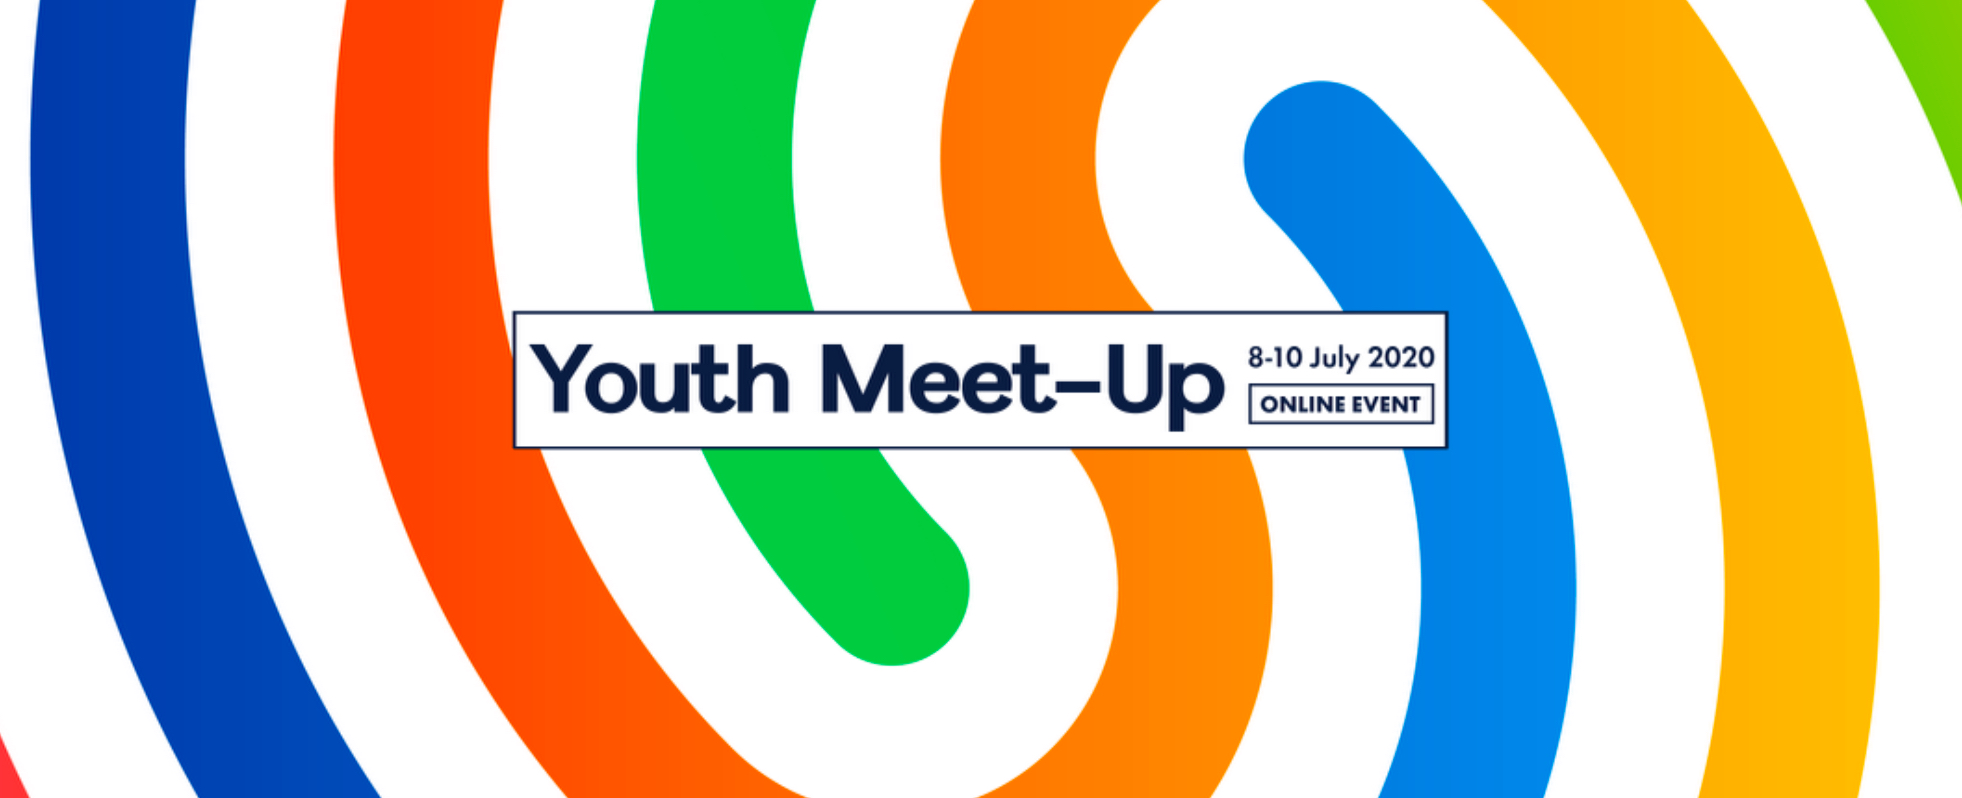 The Africa-Europe Youth Meet-Up